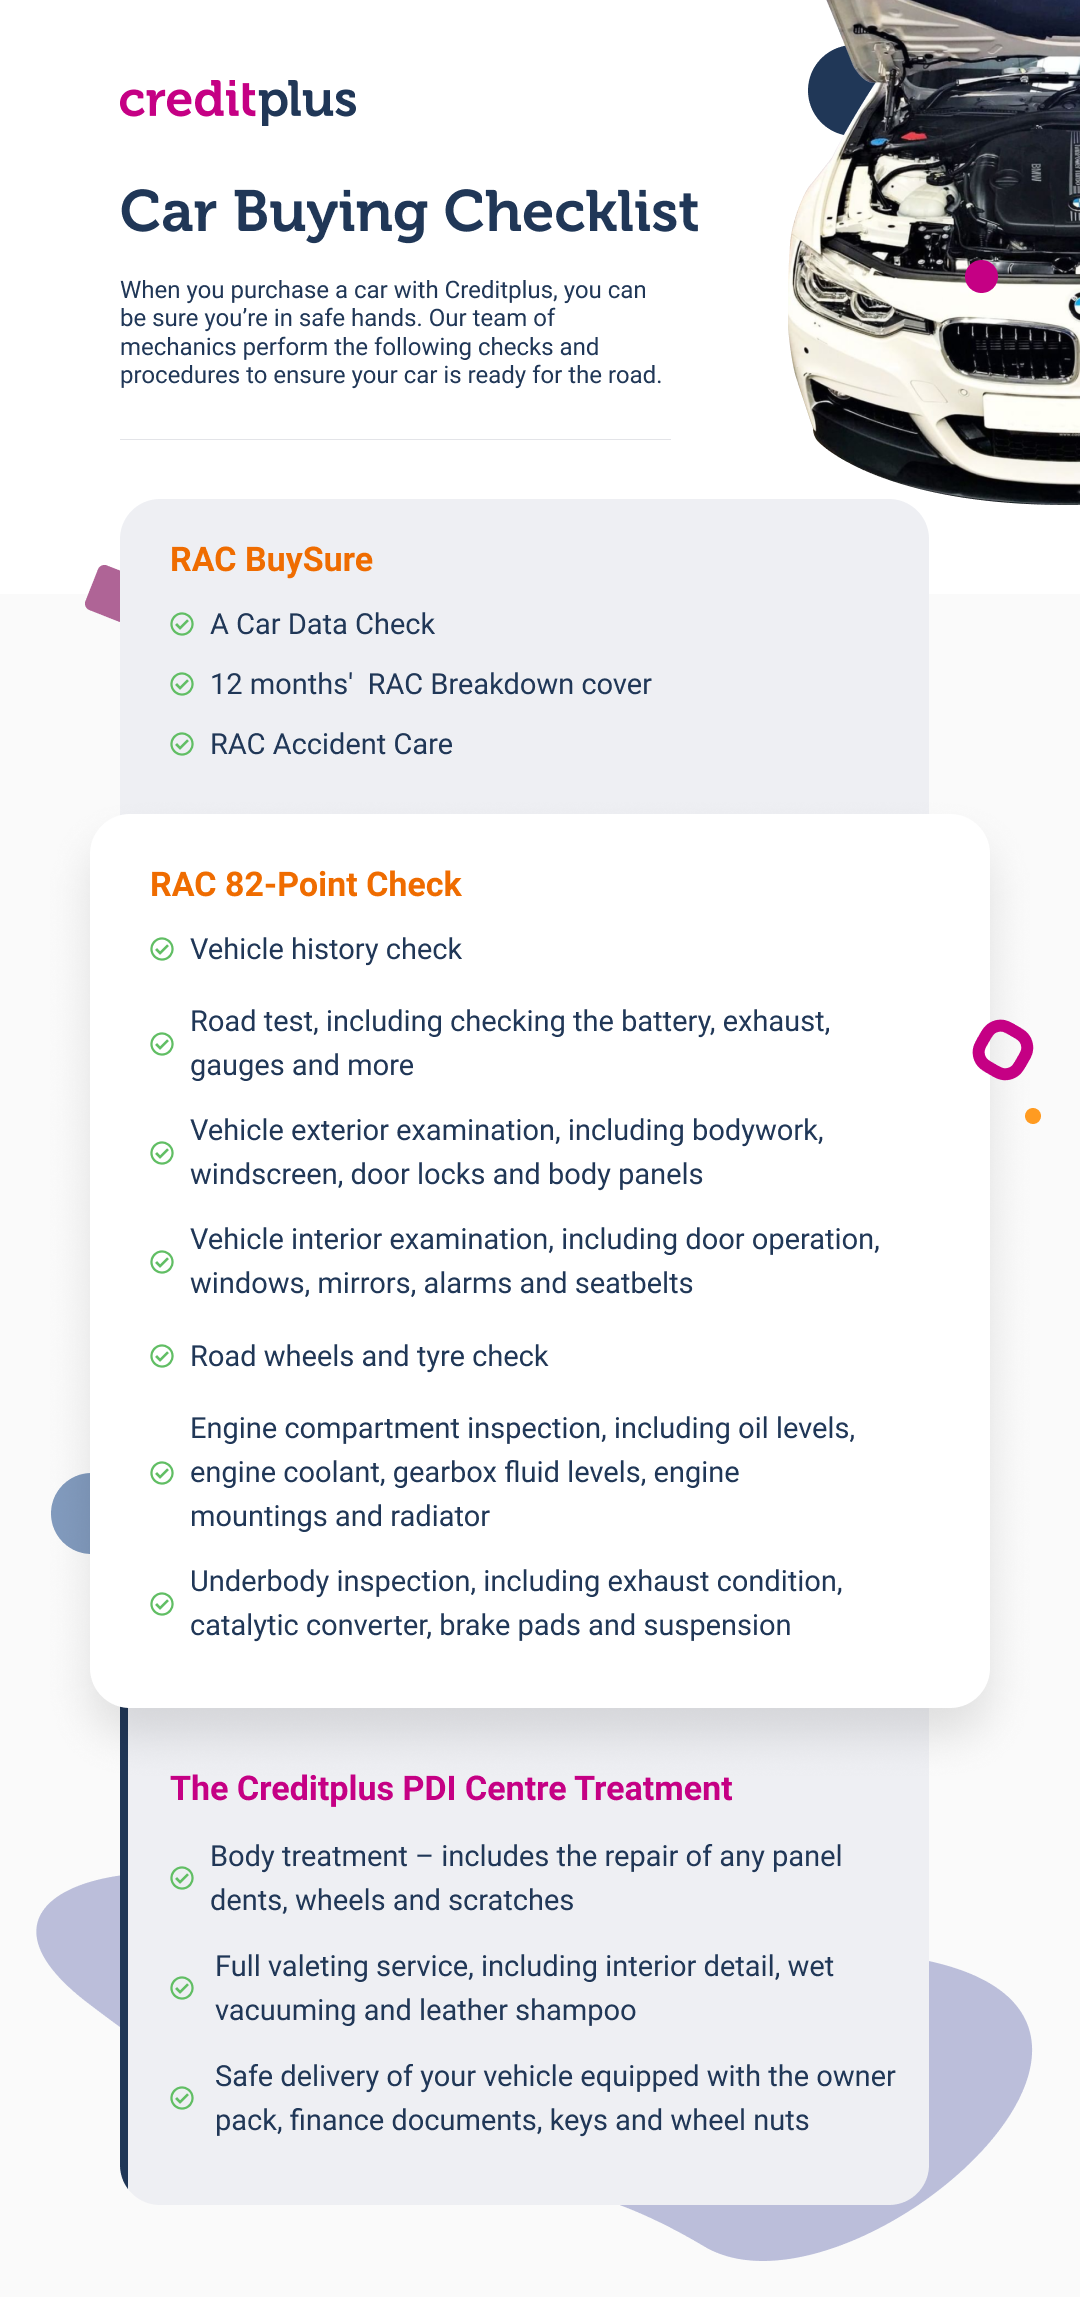 car-buying-checklistpng